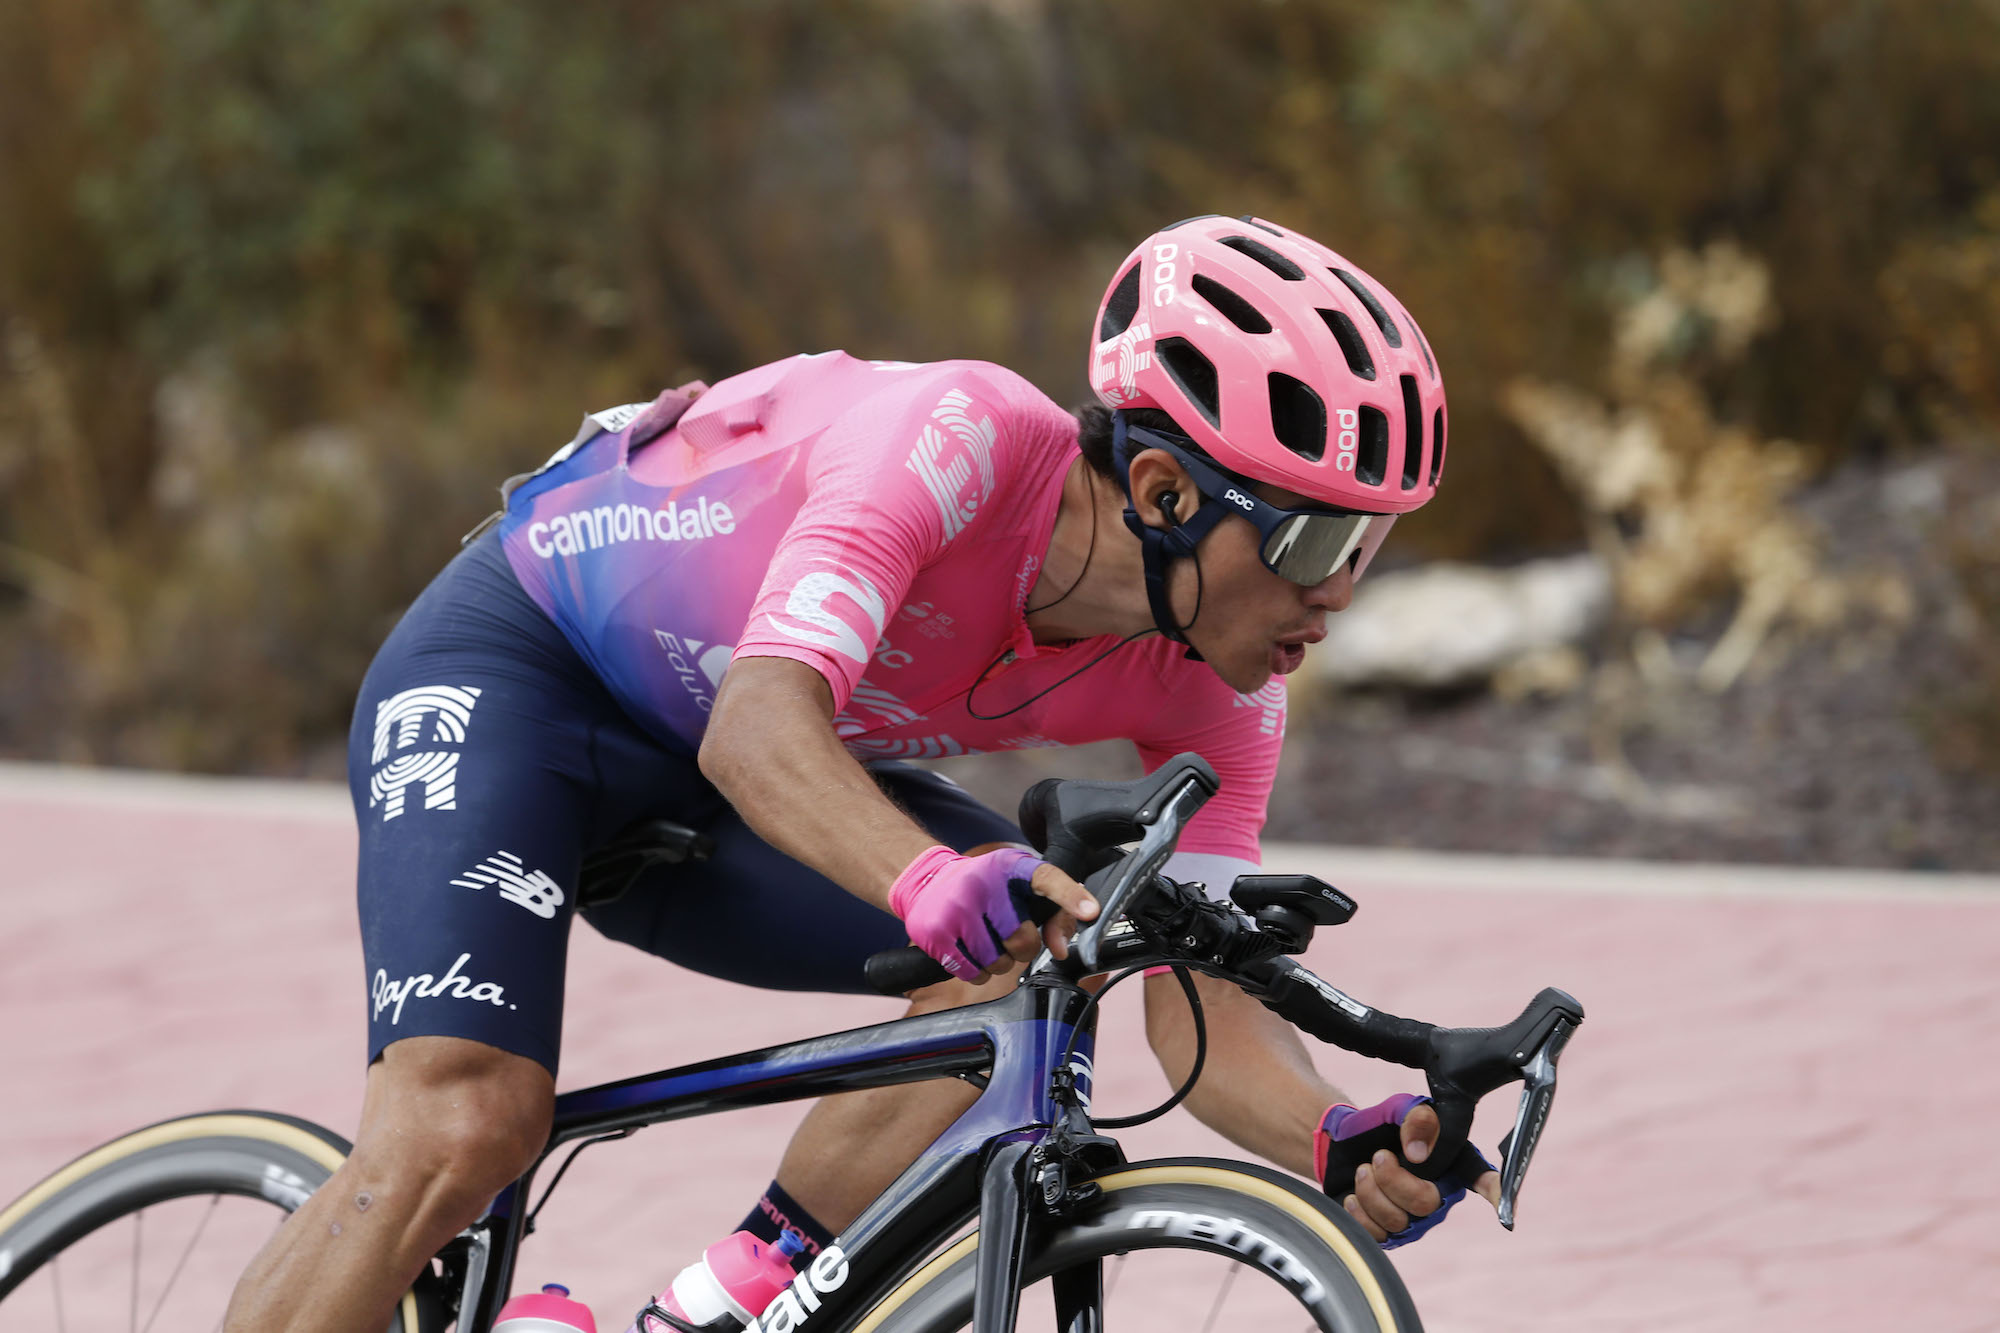 Five talking points from stage 18 of the Vuelta a España 2019